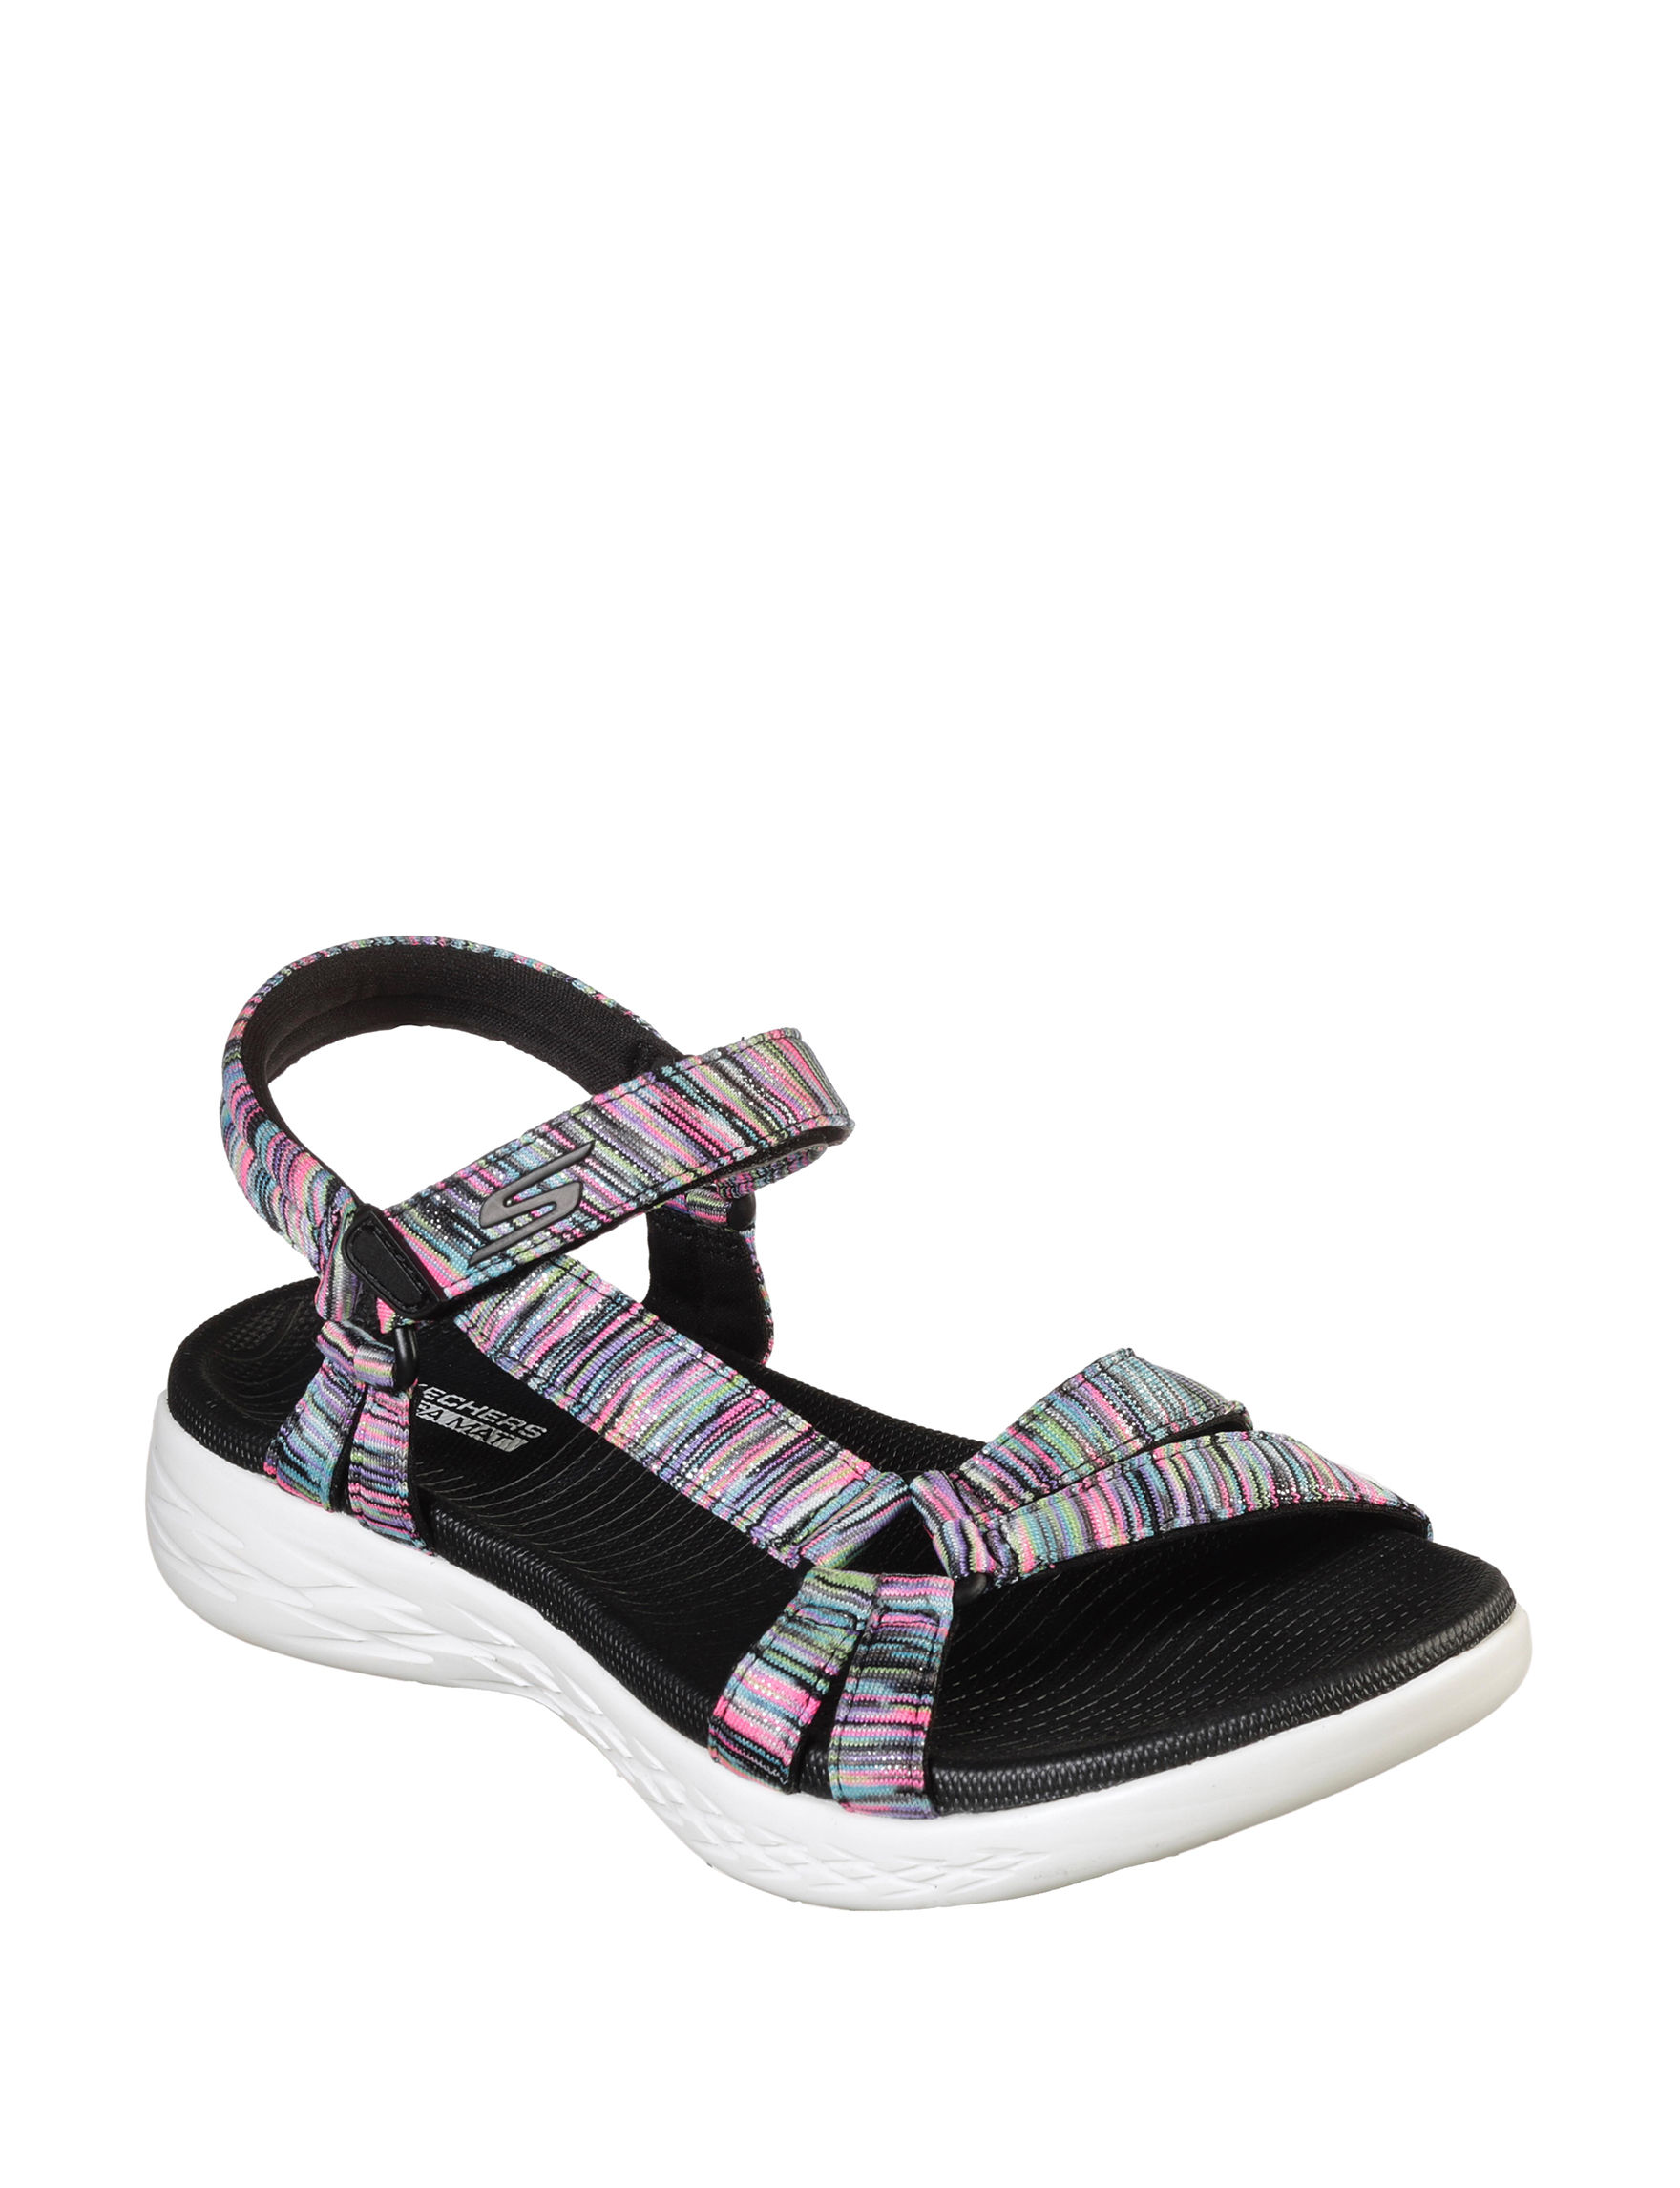 Skechers Black / Multi Sport Sandals